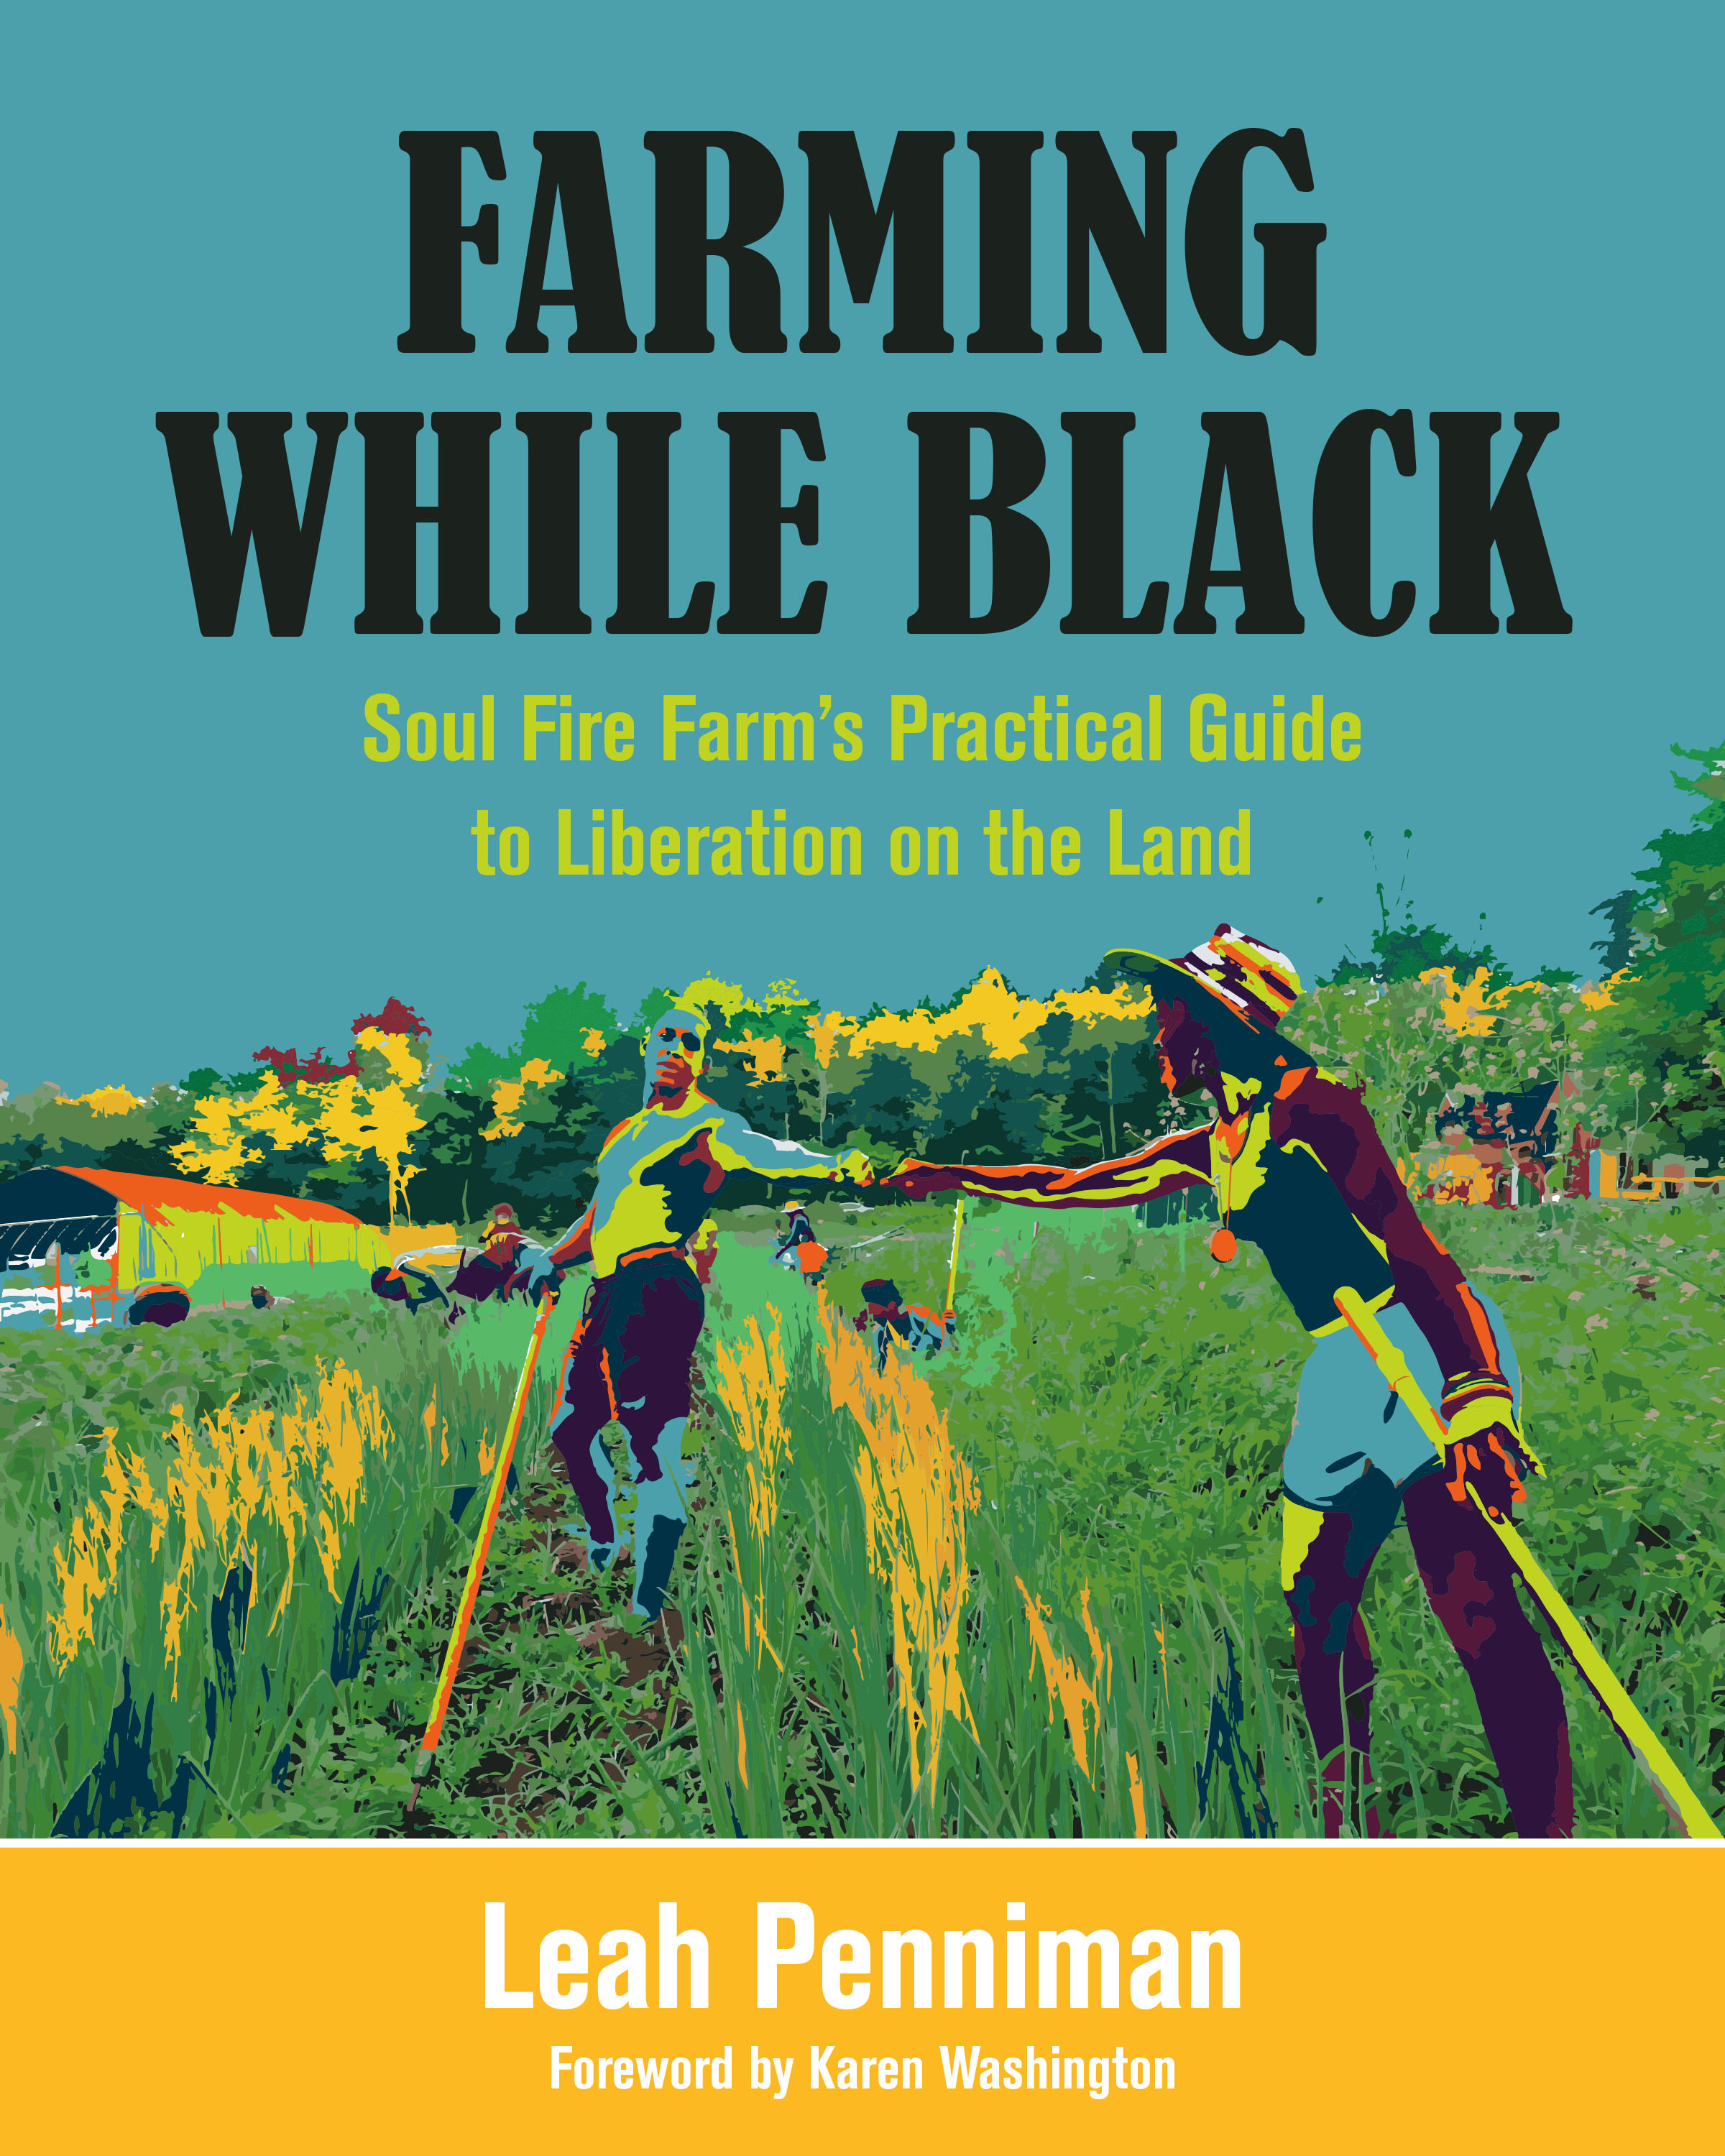 FarmingWhileBlack_cover.jpeg